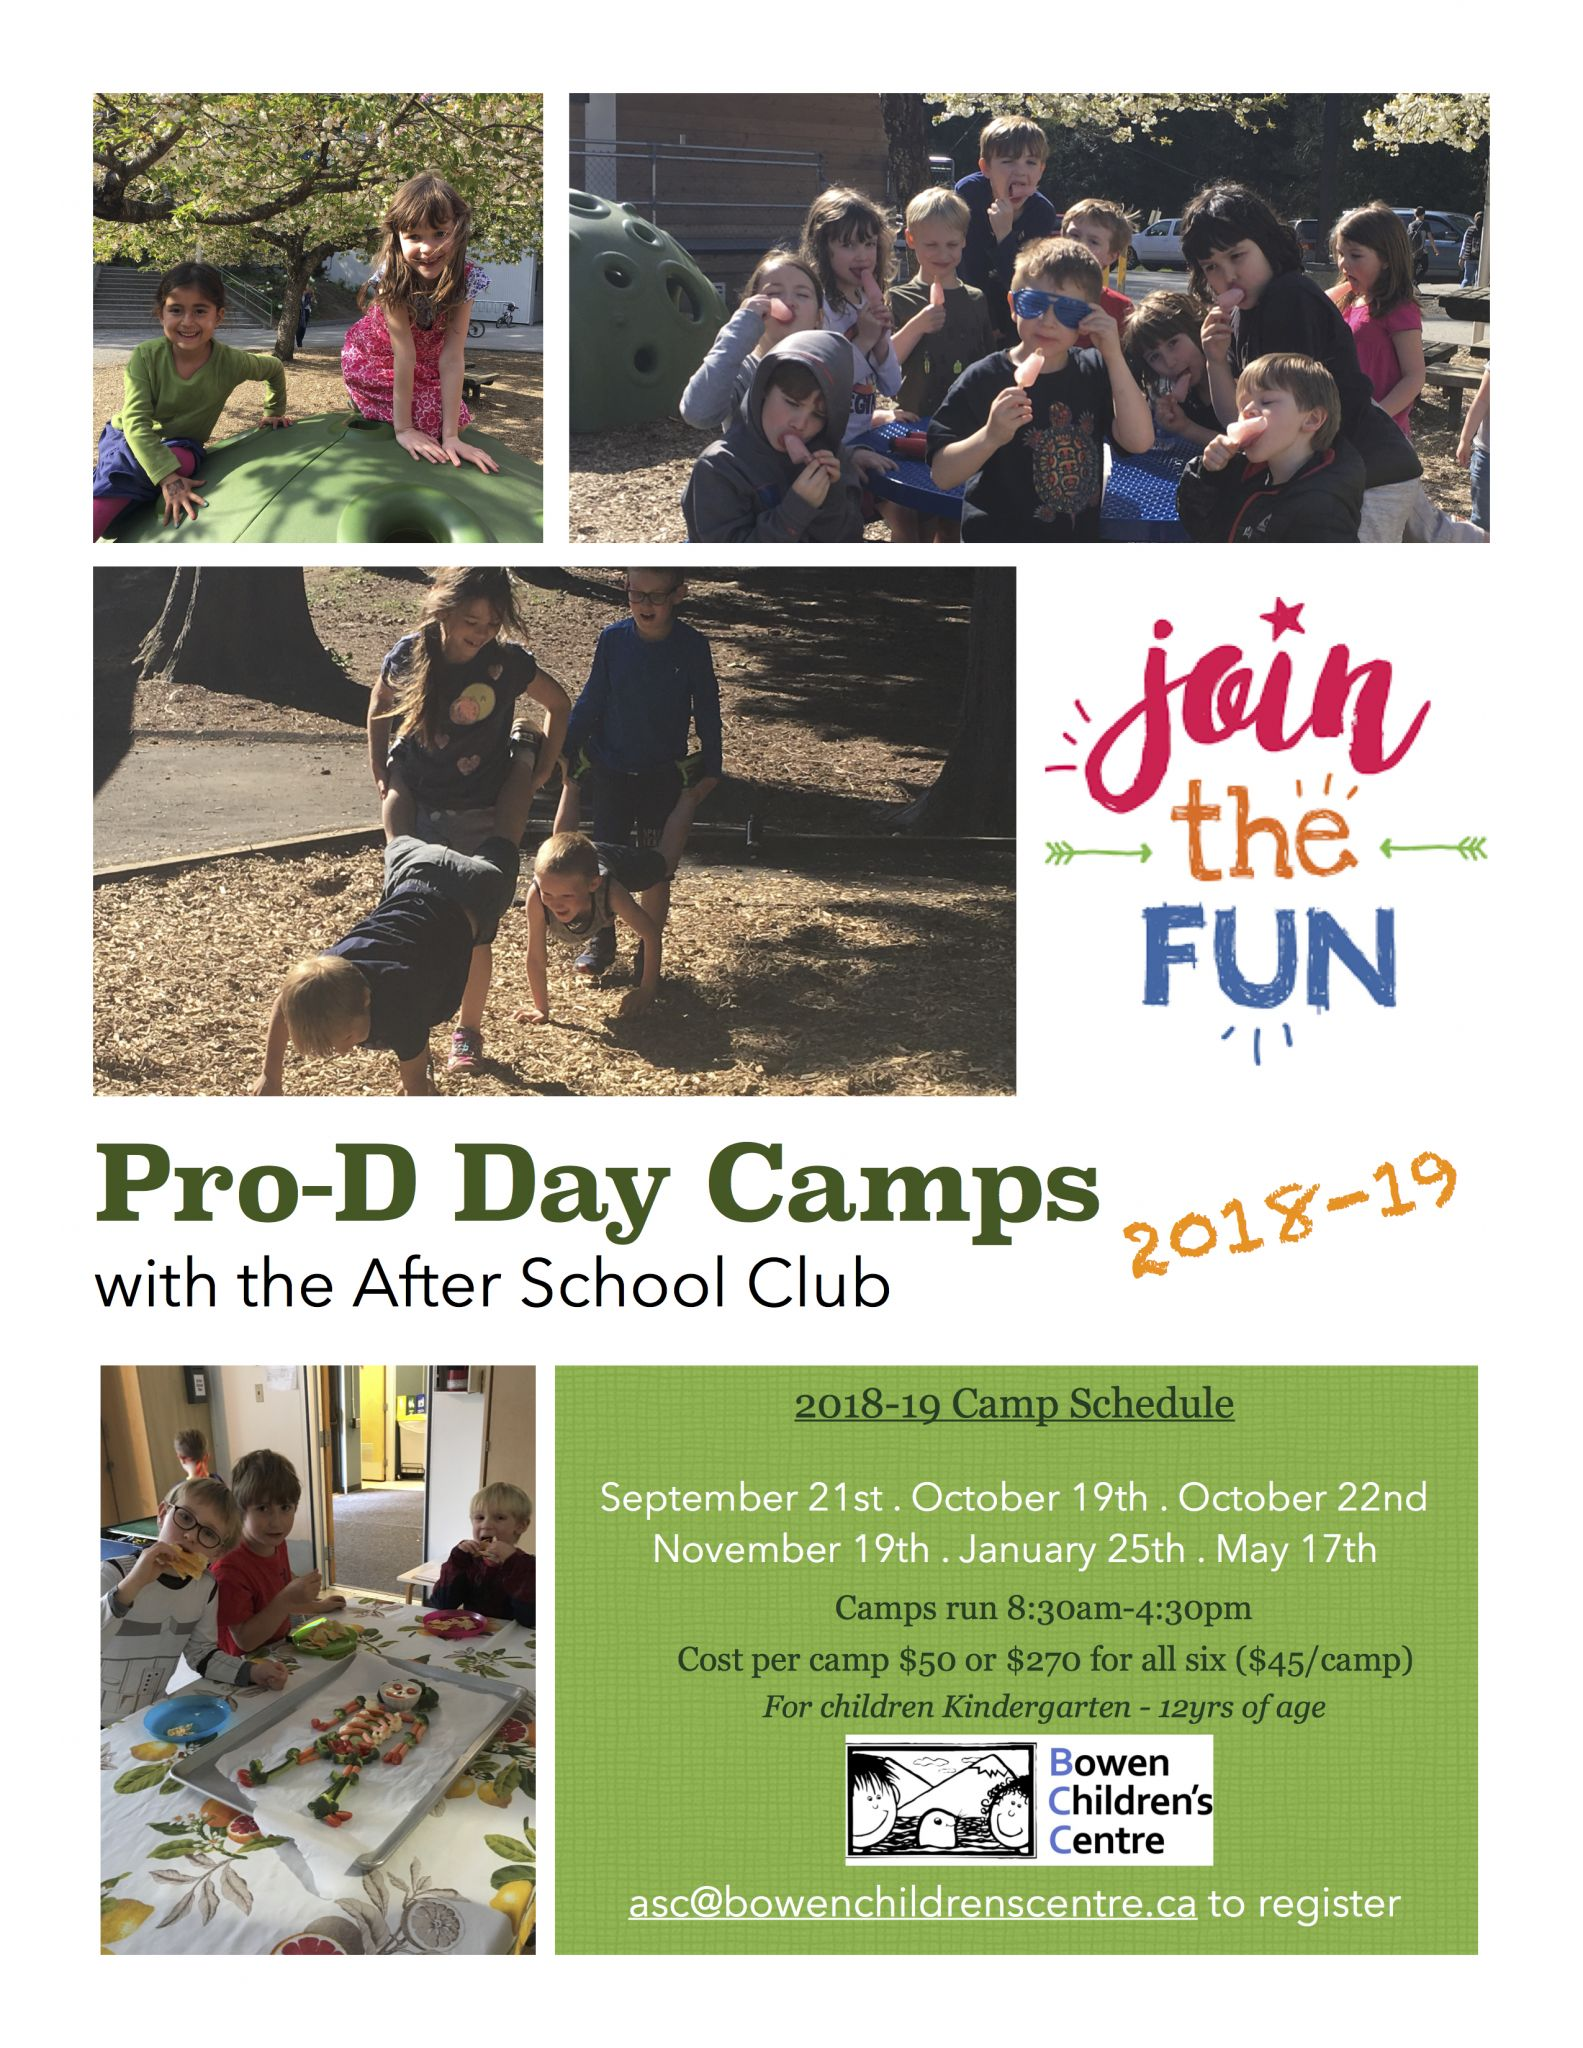 Pro-D Day Camps 2018-19